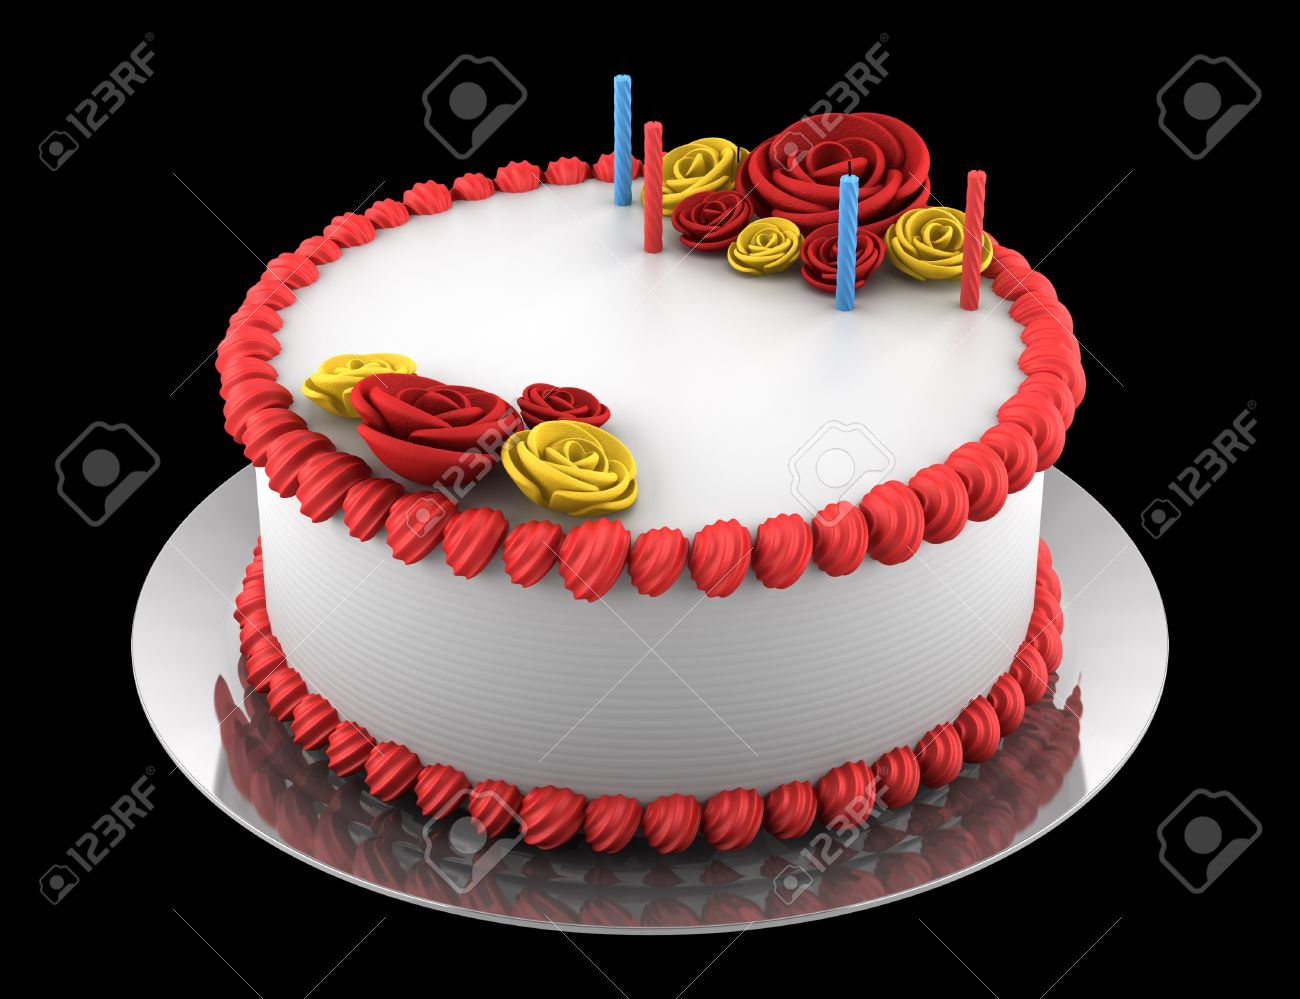 Admirable Round Birthday Cake With Candles Isolated On Black Background Funny Birthday Cards Online Barepcheapnameinfo